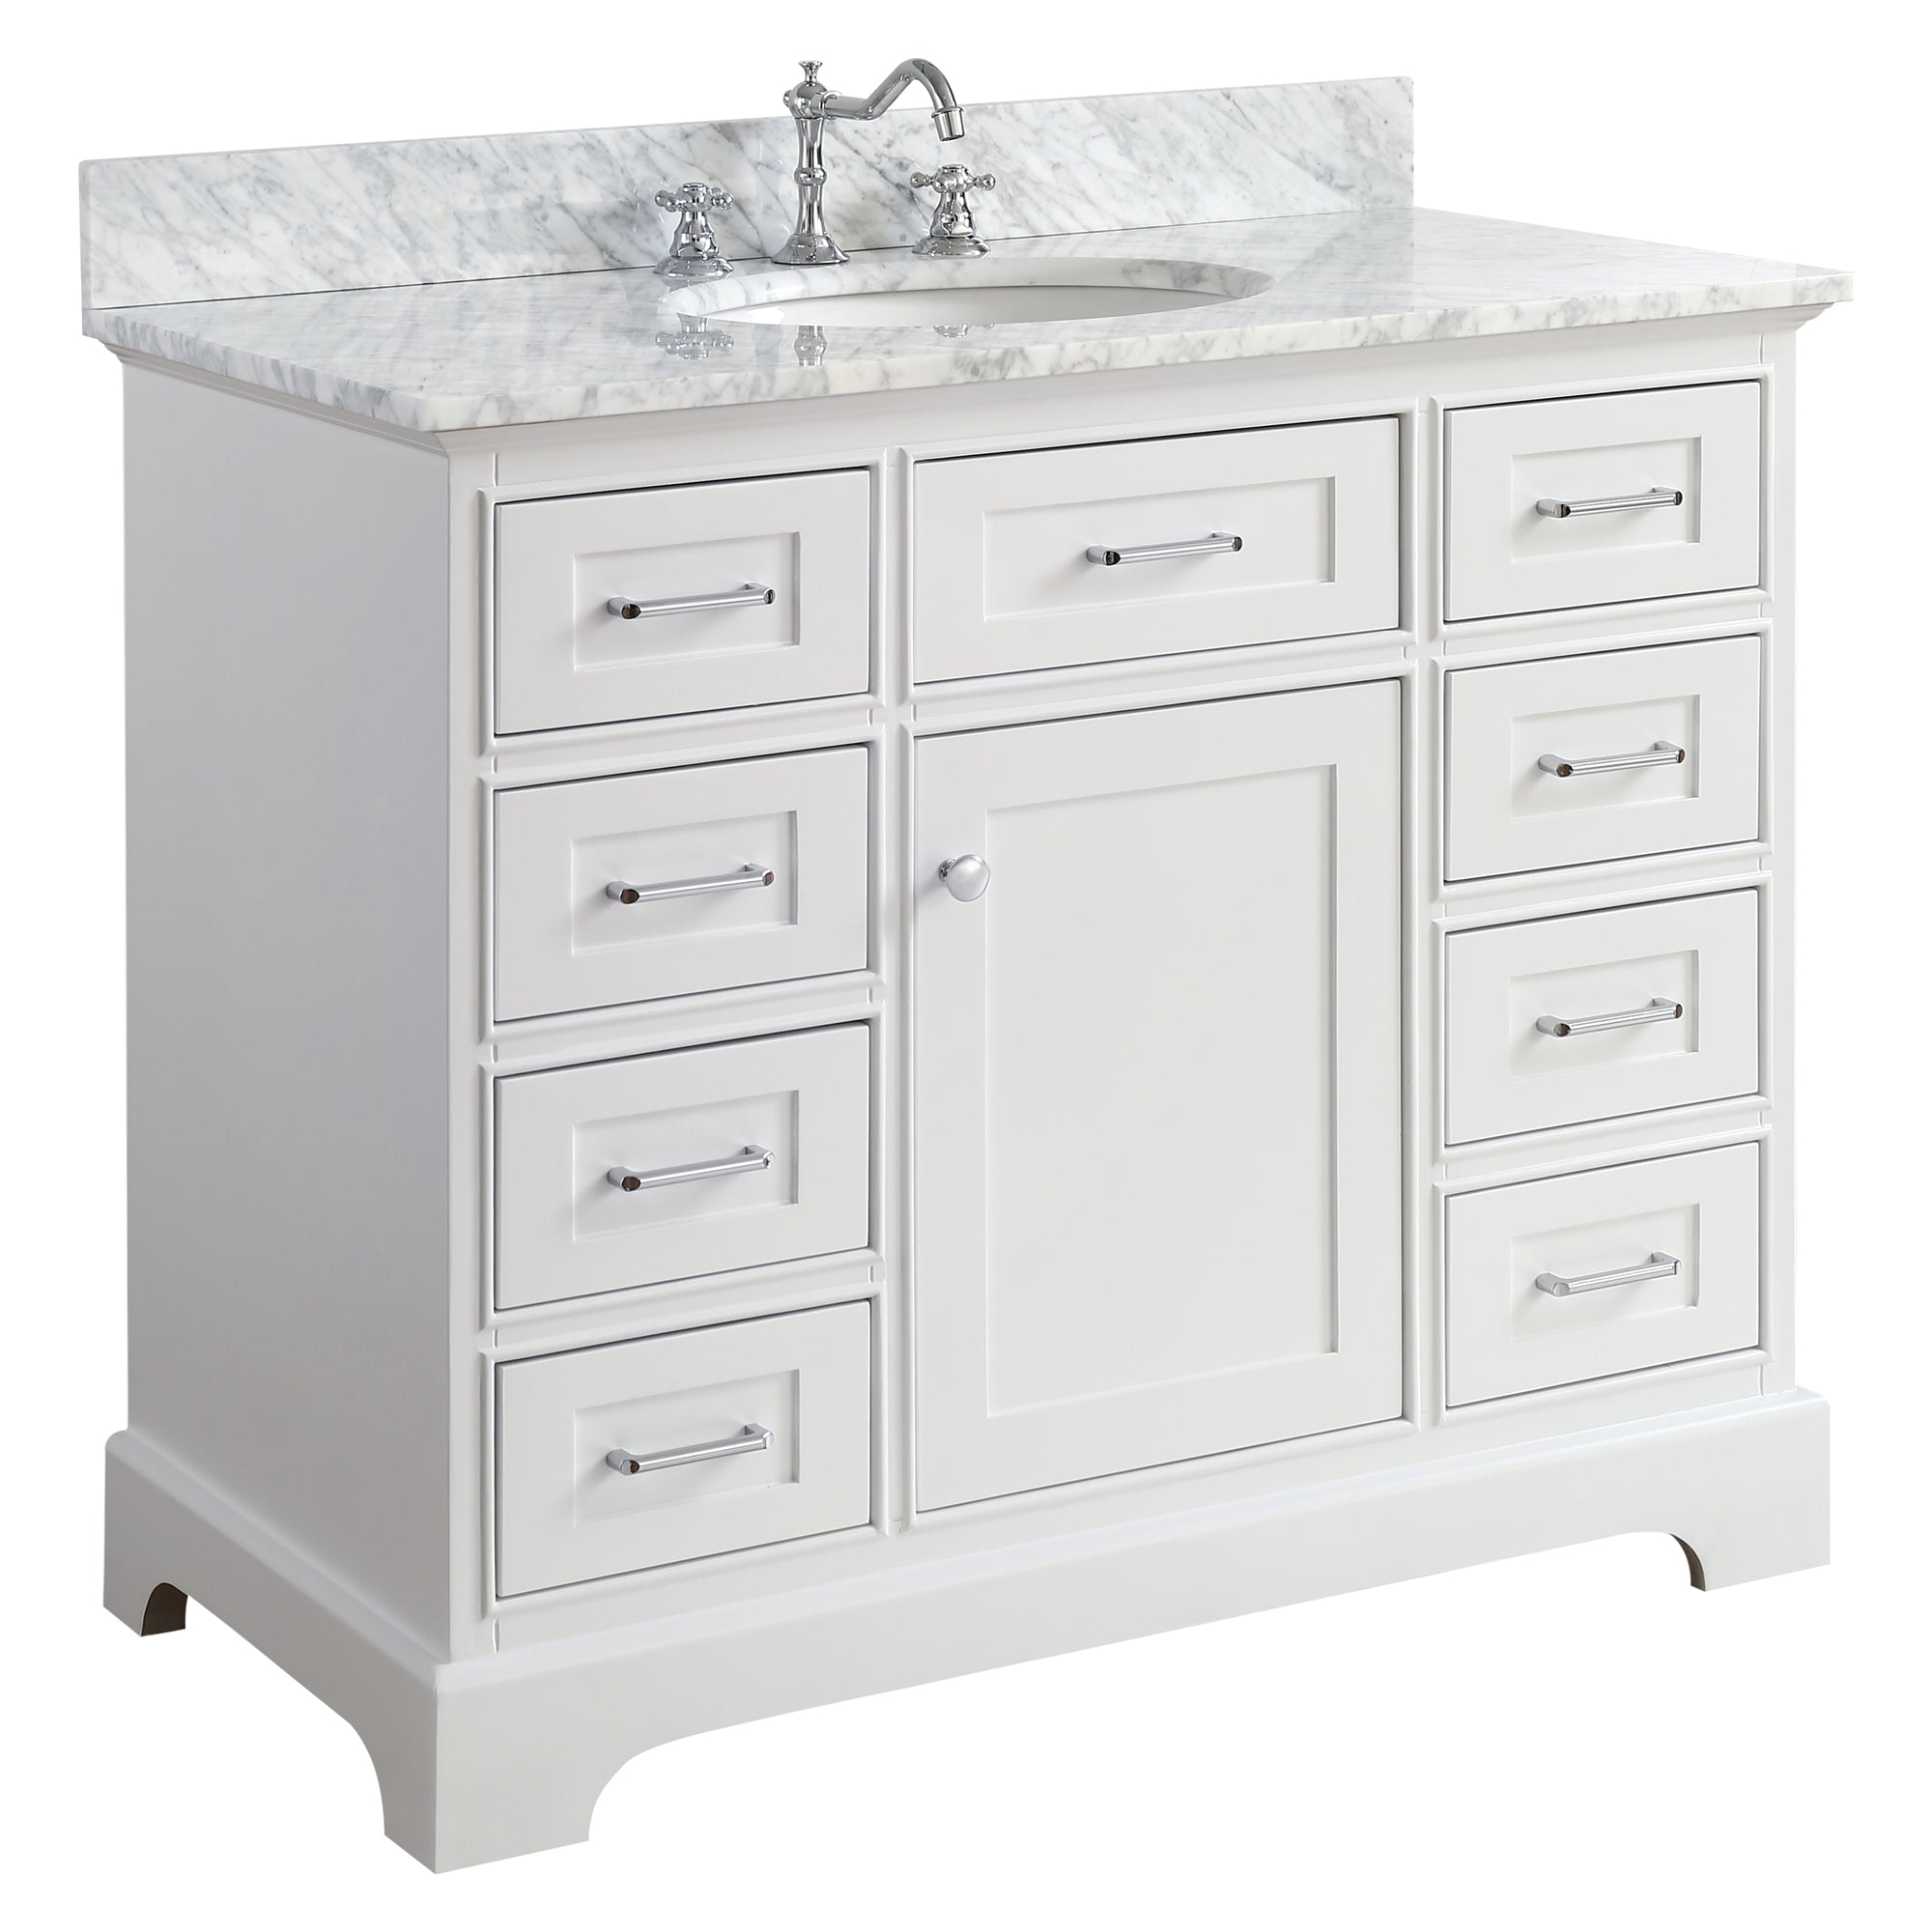 tops single bathroom cabinets offset silhouette vanity vanities bunch with of canada top sink modern solutions ideas collection allmodern